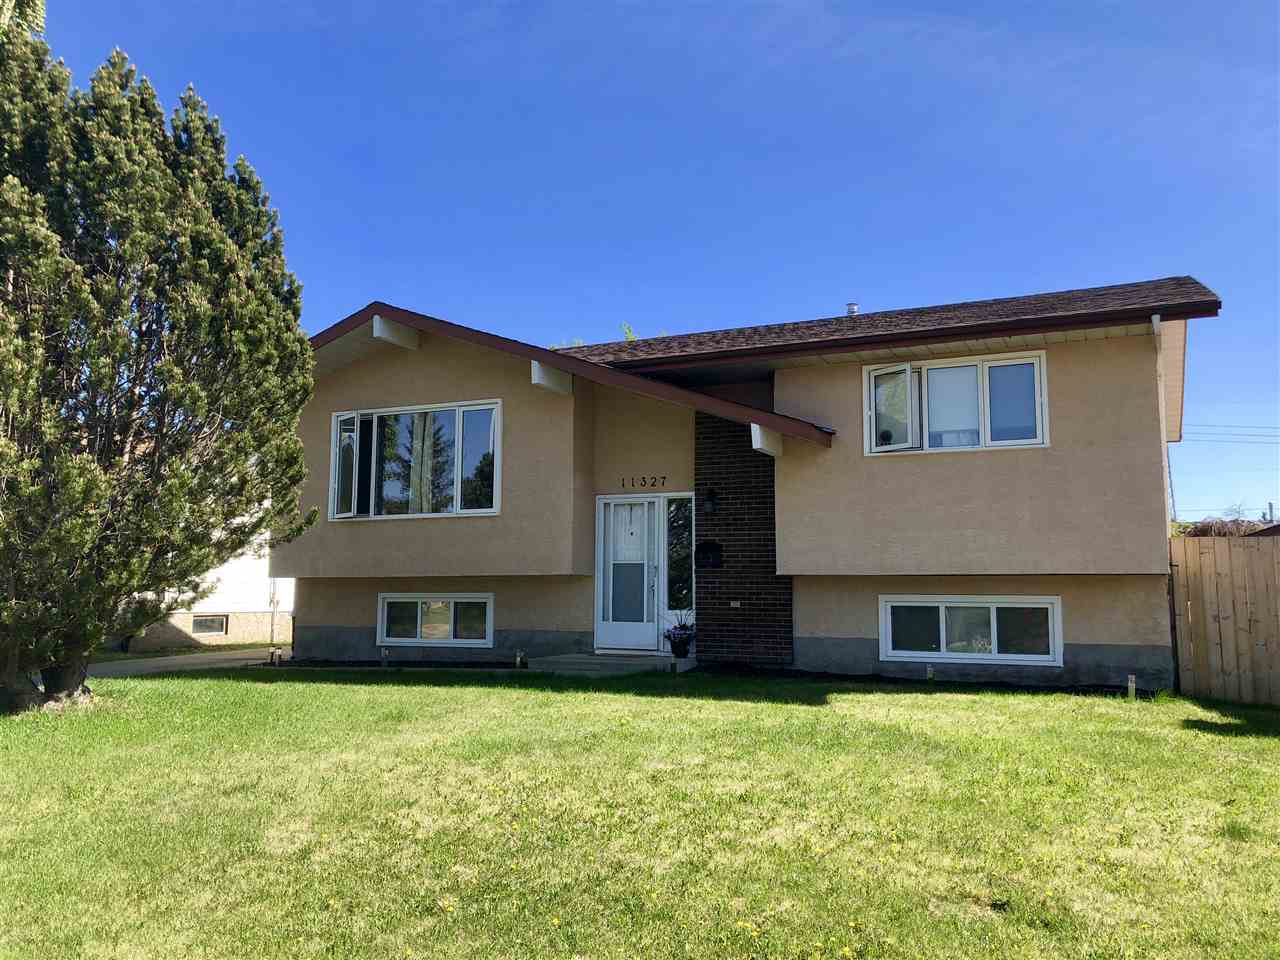 11327 165 Avenue NW, 4 bed, 2 bath, at $359,900